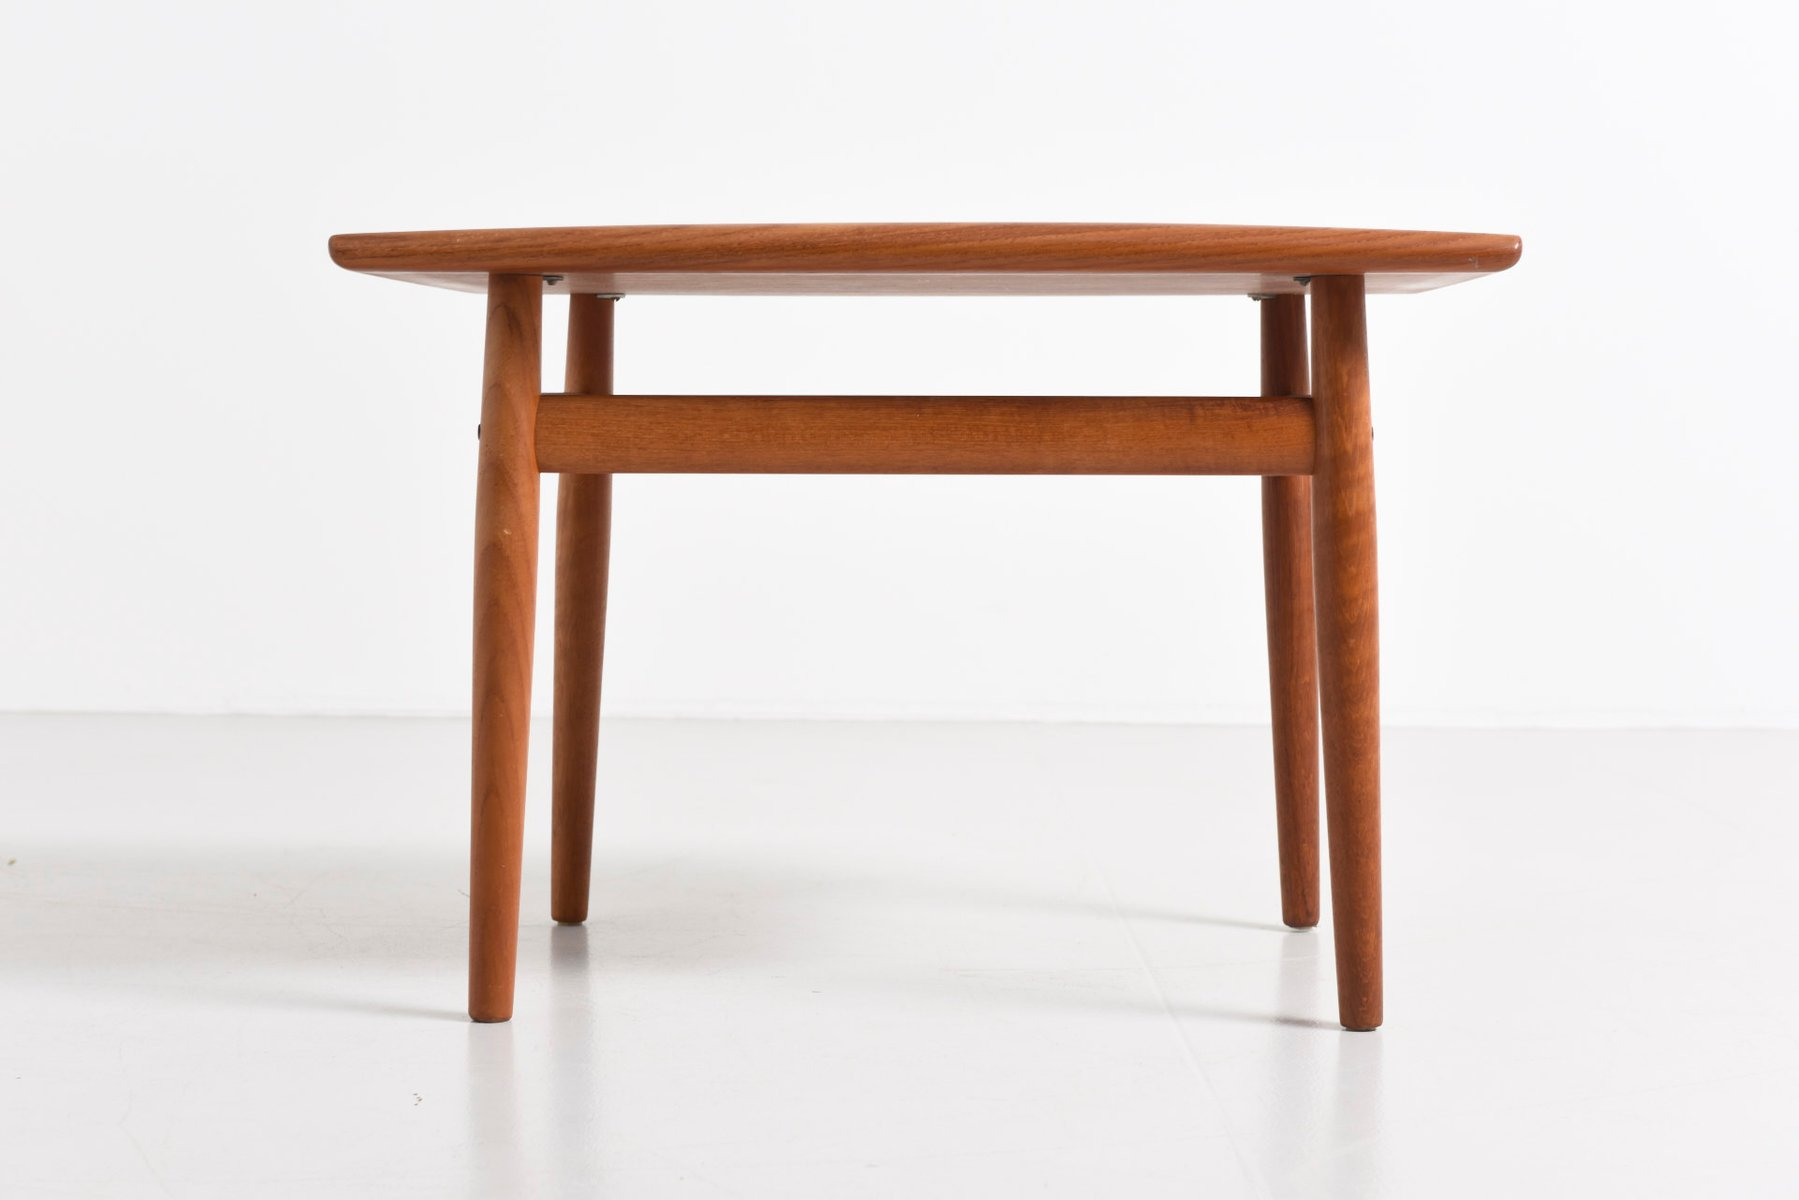 Mobilia design coffee and side tables - Small Side Table By Grete Jalk For Glostrup